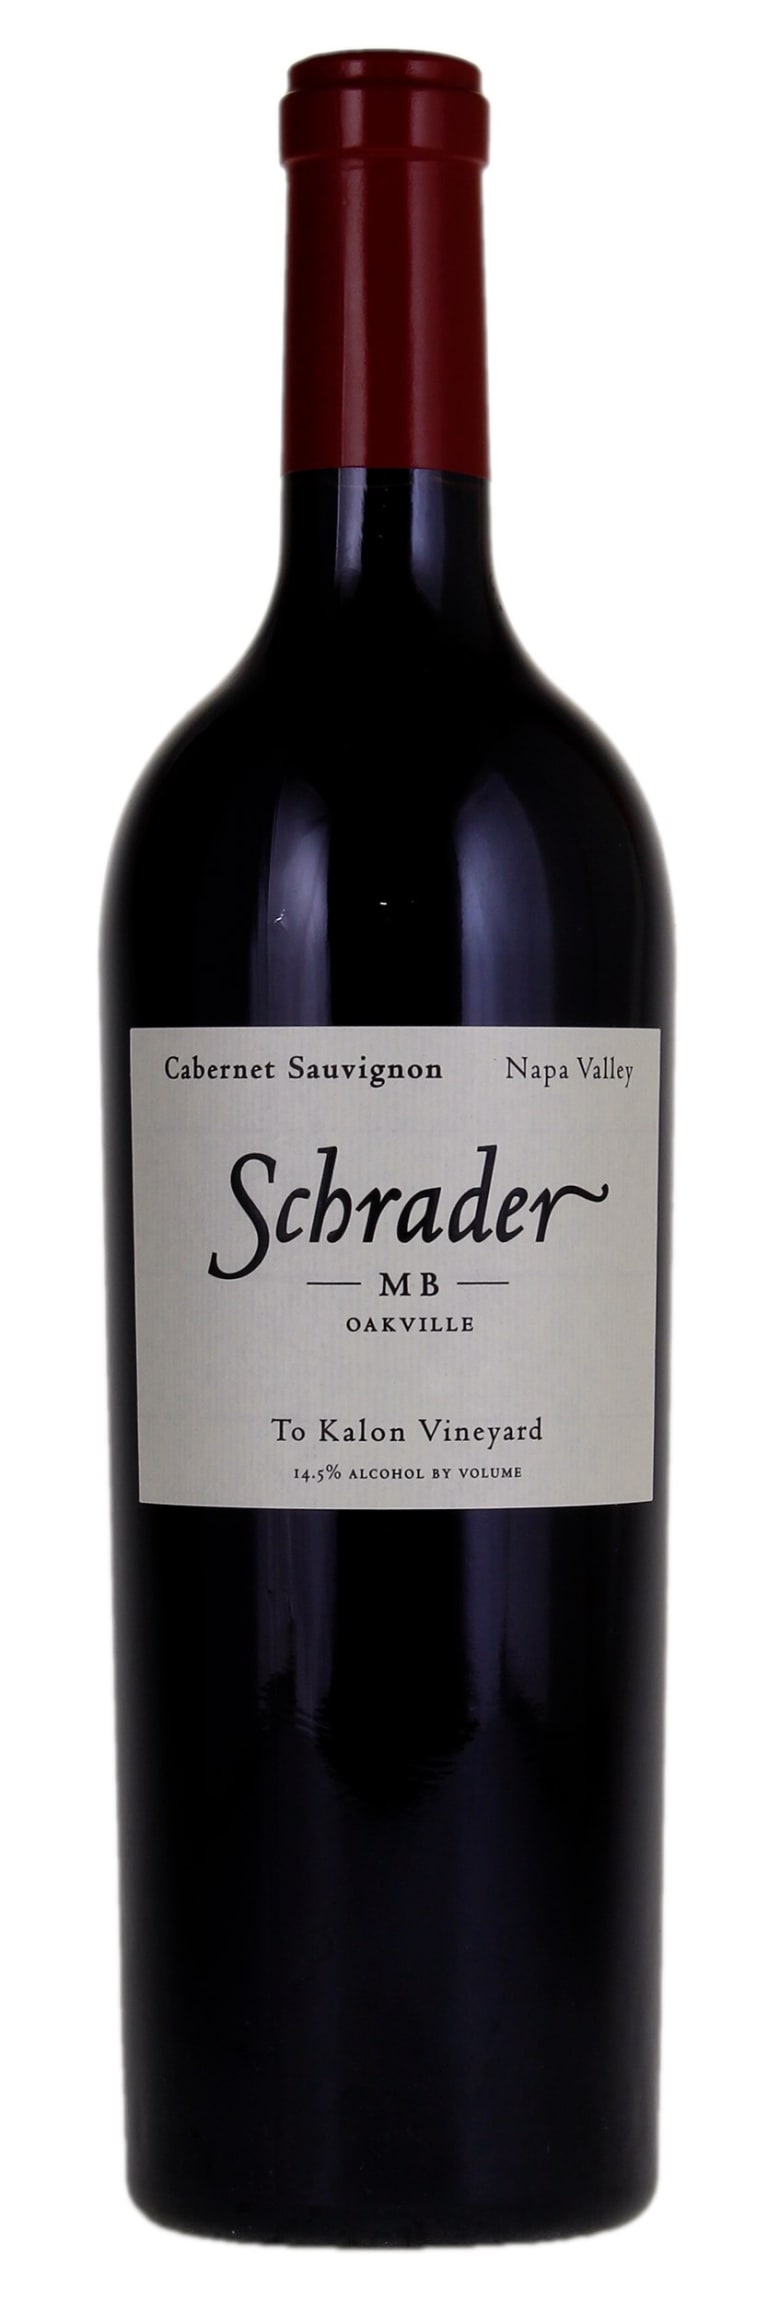 2018 Schrader Cellars Cabernet Sauvignon MB To Kalon Vineyard (750ml)